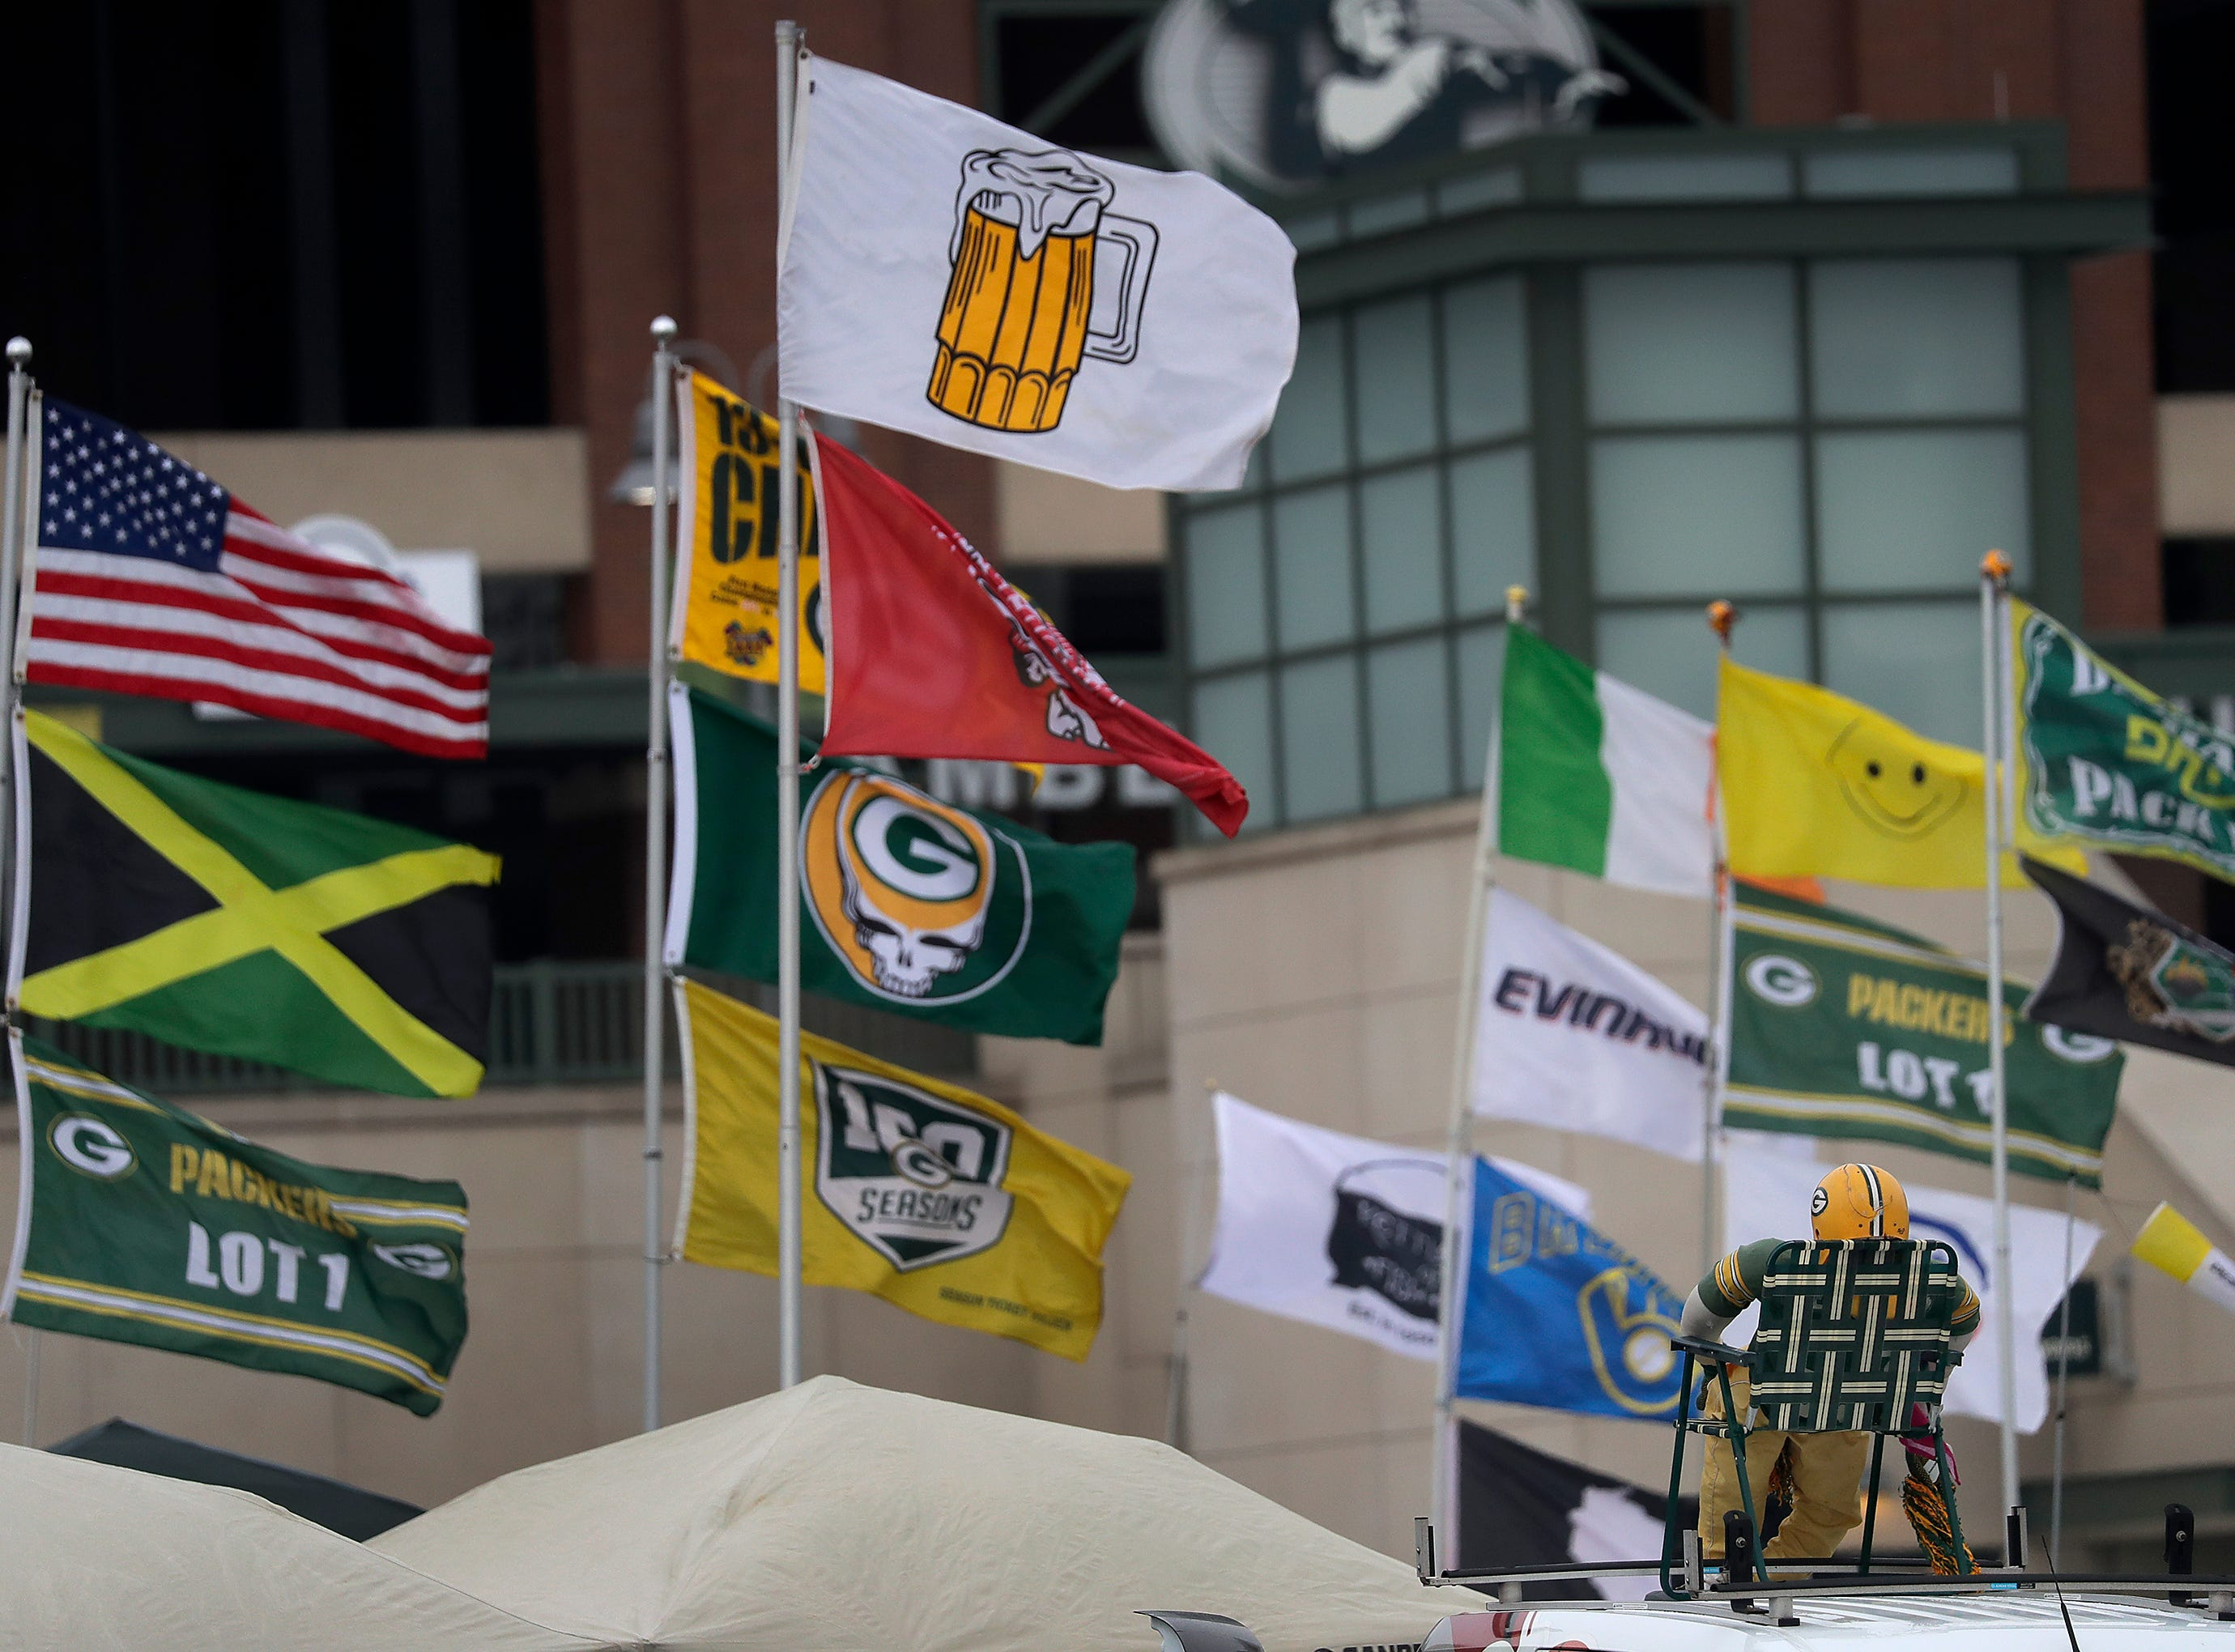 Strong winds gust through the parking lot before the Green Bay Packers take on the Detroit Lions on Sunday, December 30, 2018, at Lambeau Field in Green Bay, Wis.